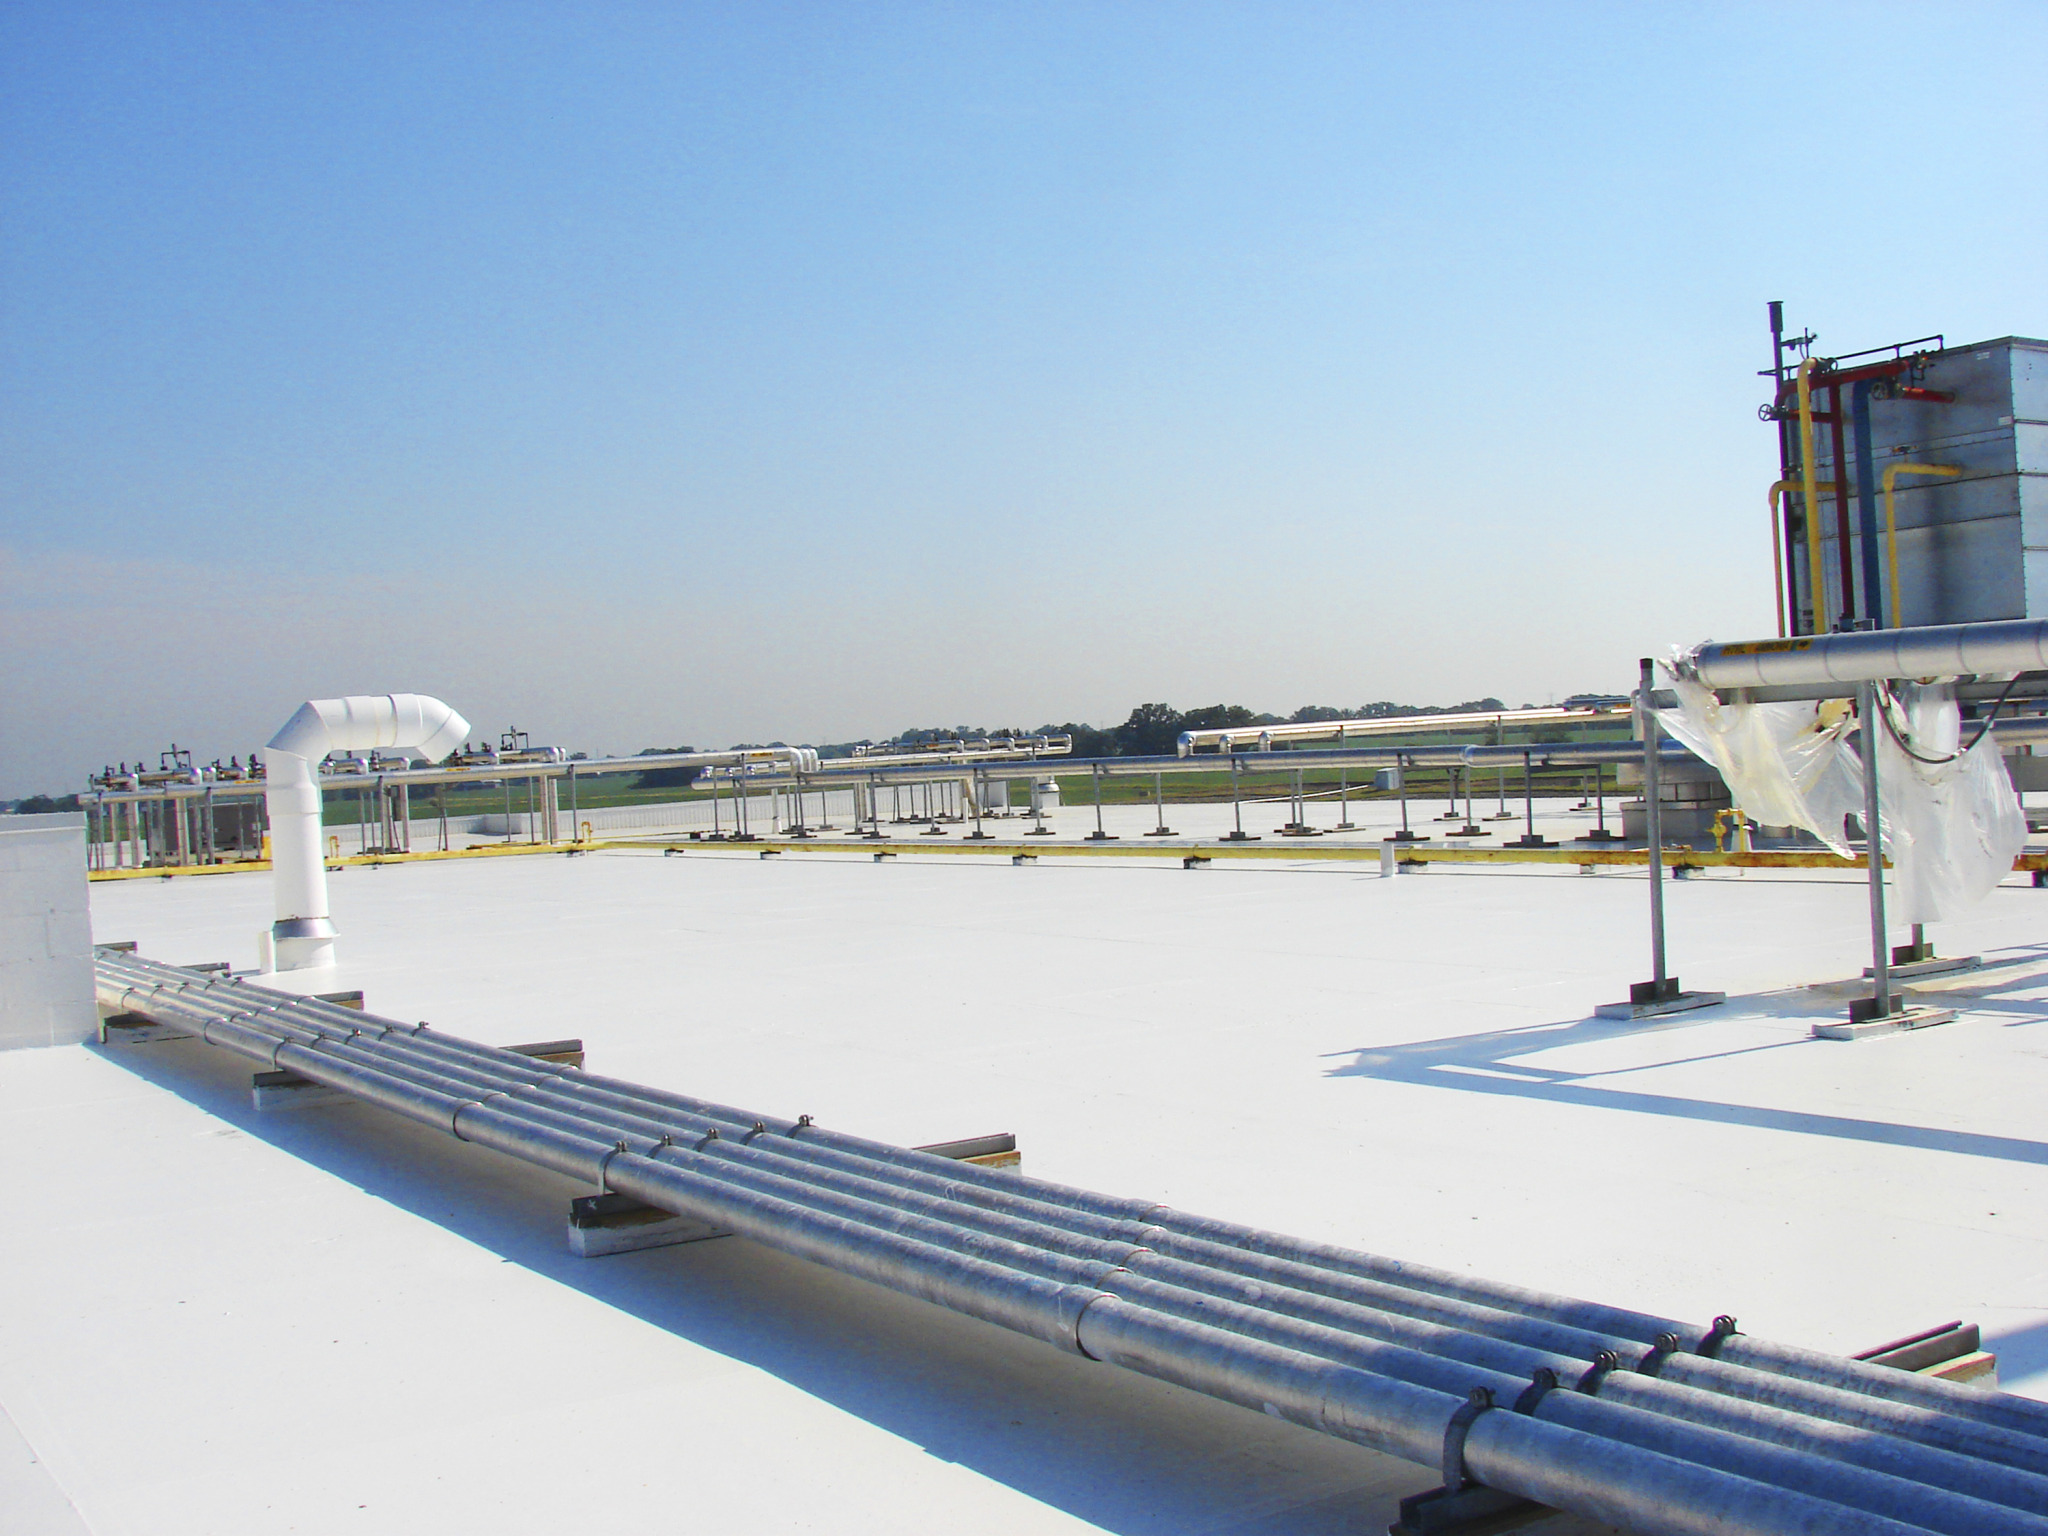 The New Silicone Roof Coating System From Mule Hide Products Co. Inc. Can